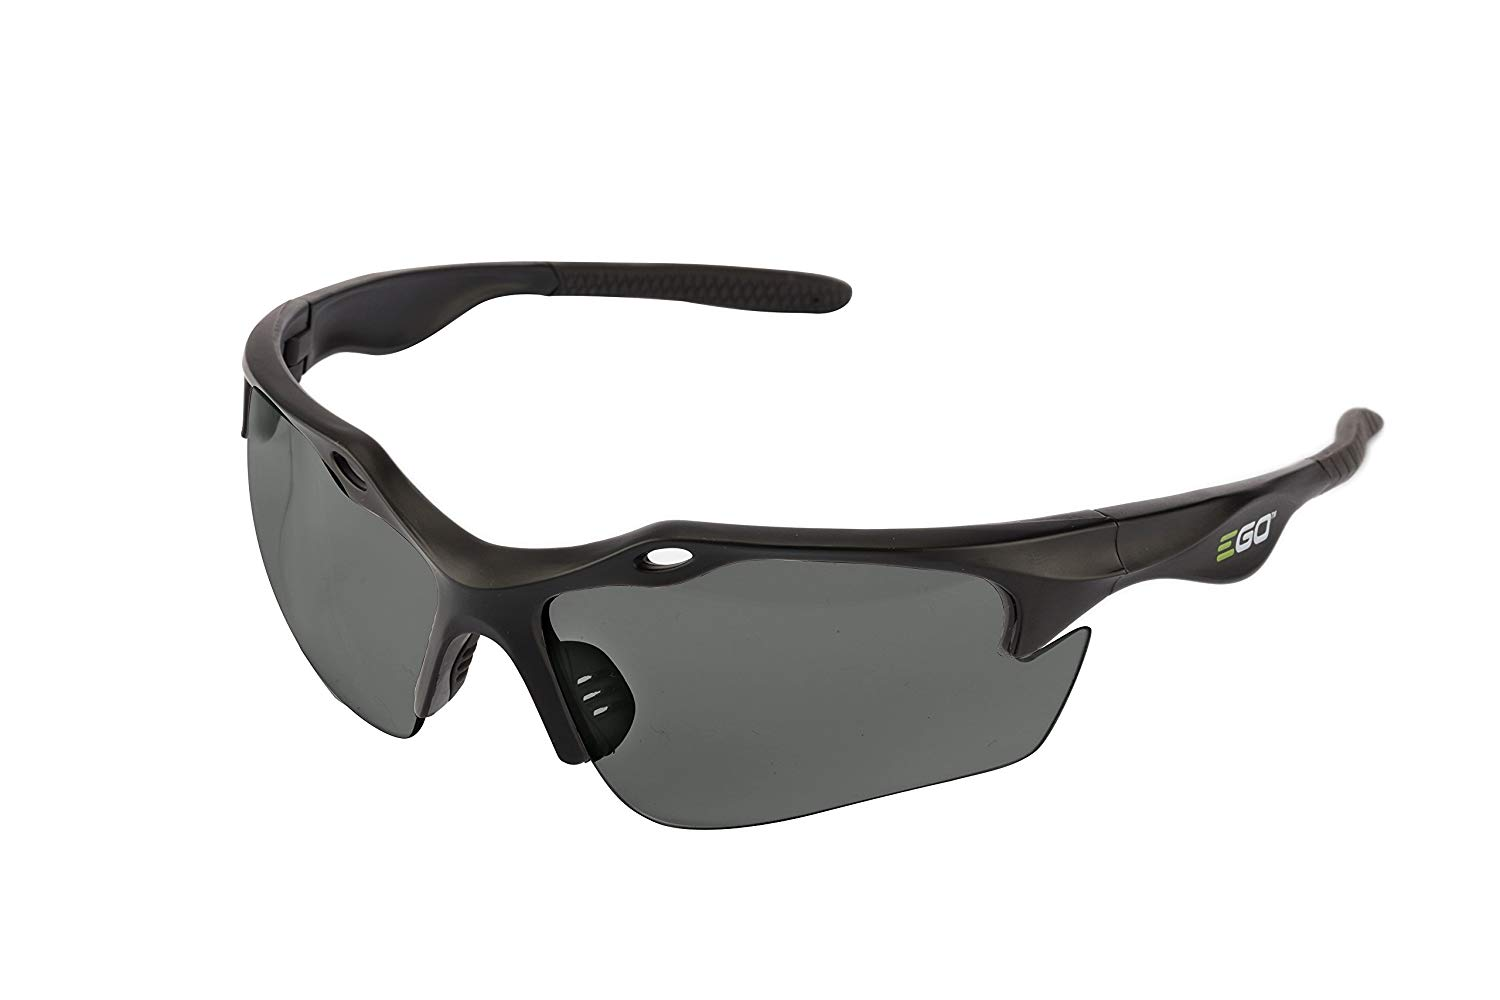 a620ffedb881 Get Quotations · EGO Power+ GS002 Anti-scratch Safety Glasses with  99.99-Percent UV Protection and ANSI